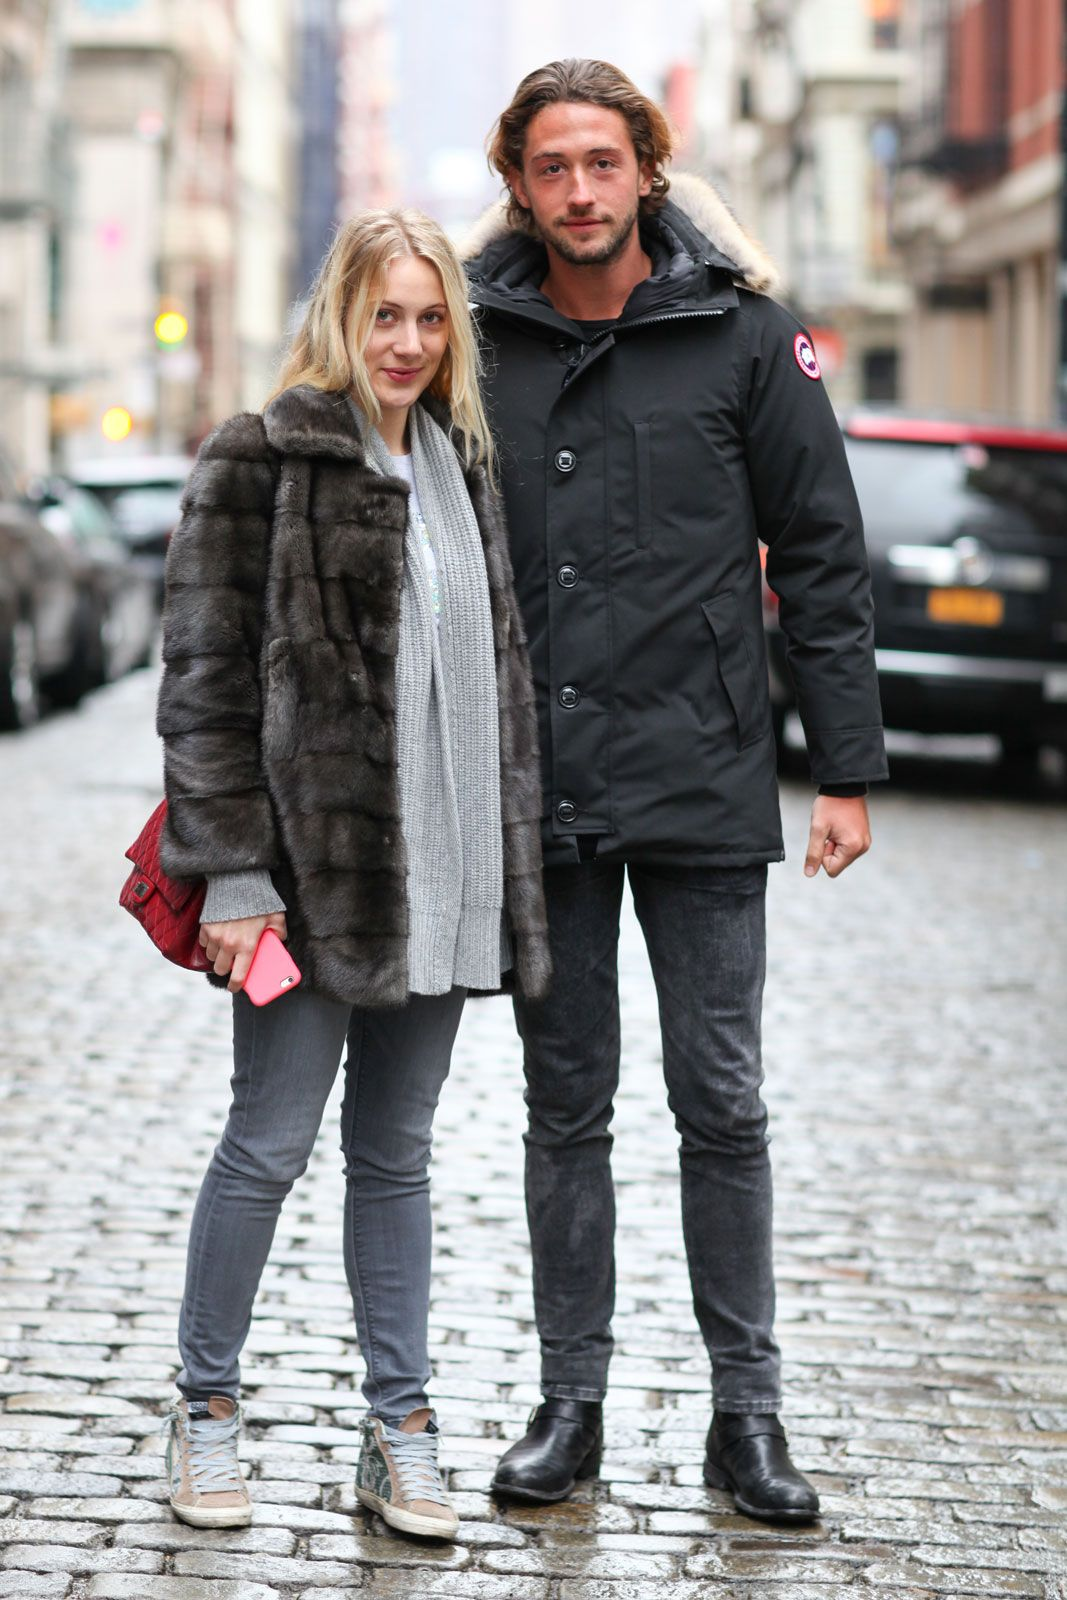 The Warmest Parkas of Winter 2017 - Best Winter Coats Most fashionable canada goose jacket